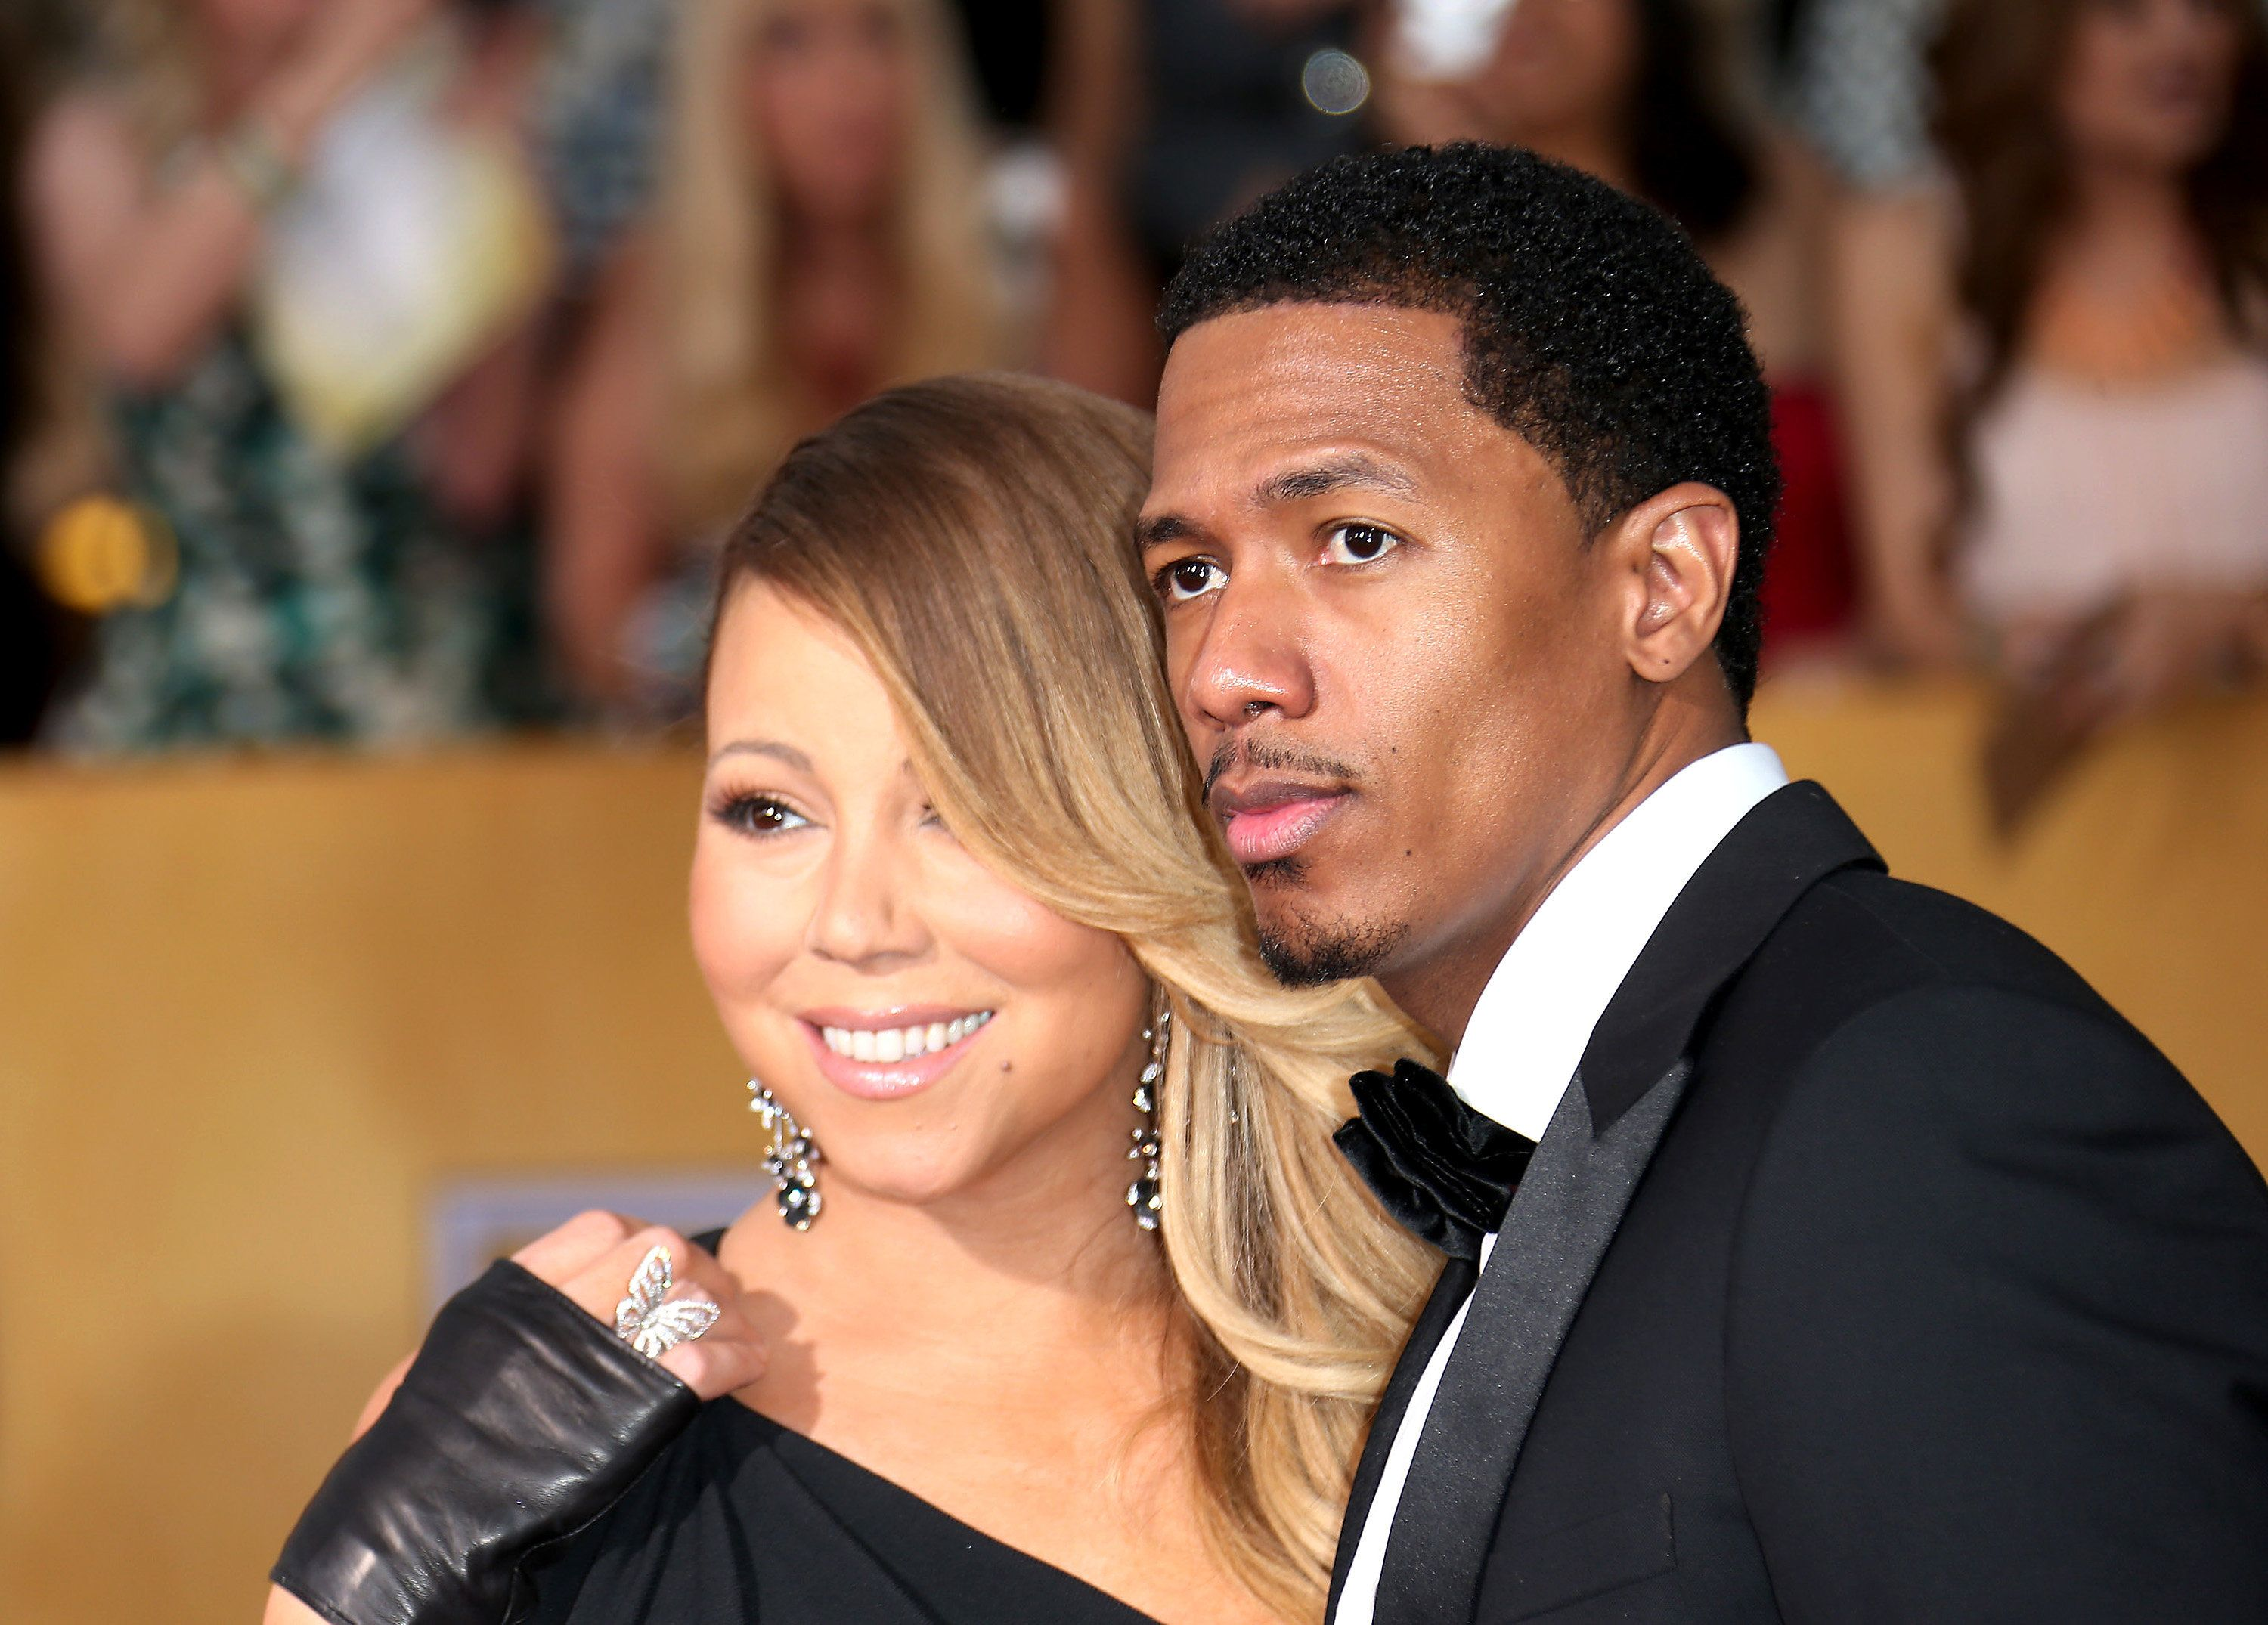 LOS ANGELES, CA - JANUARY 18: Mariah Carey and Nick Cannon (R) arrive at the 20th Annual Screen Actors Guild Awards at the Shrine Auditorium on January 18, 2014 in Los Angeles, California. (Photo by Dan MacMedan/WireImage)